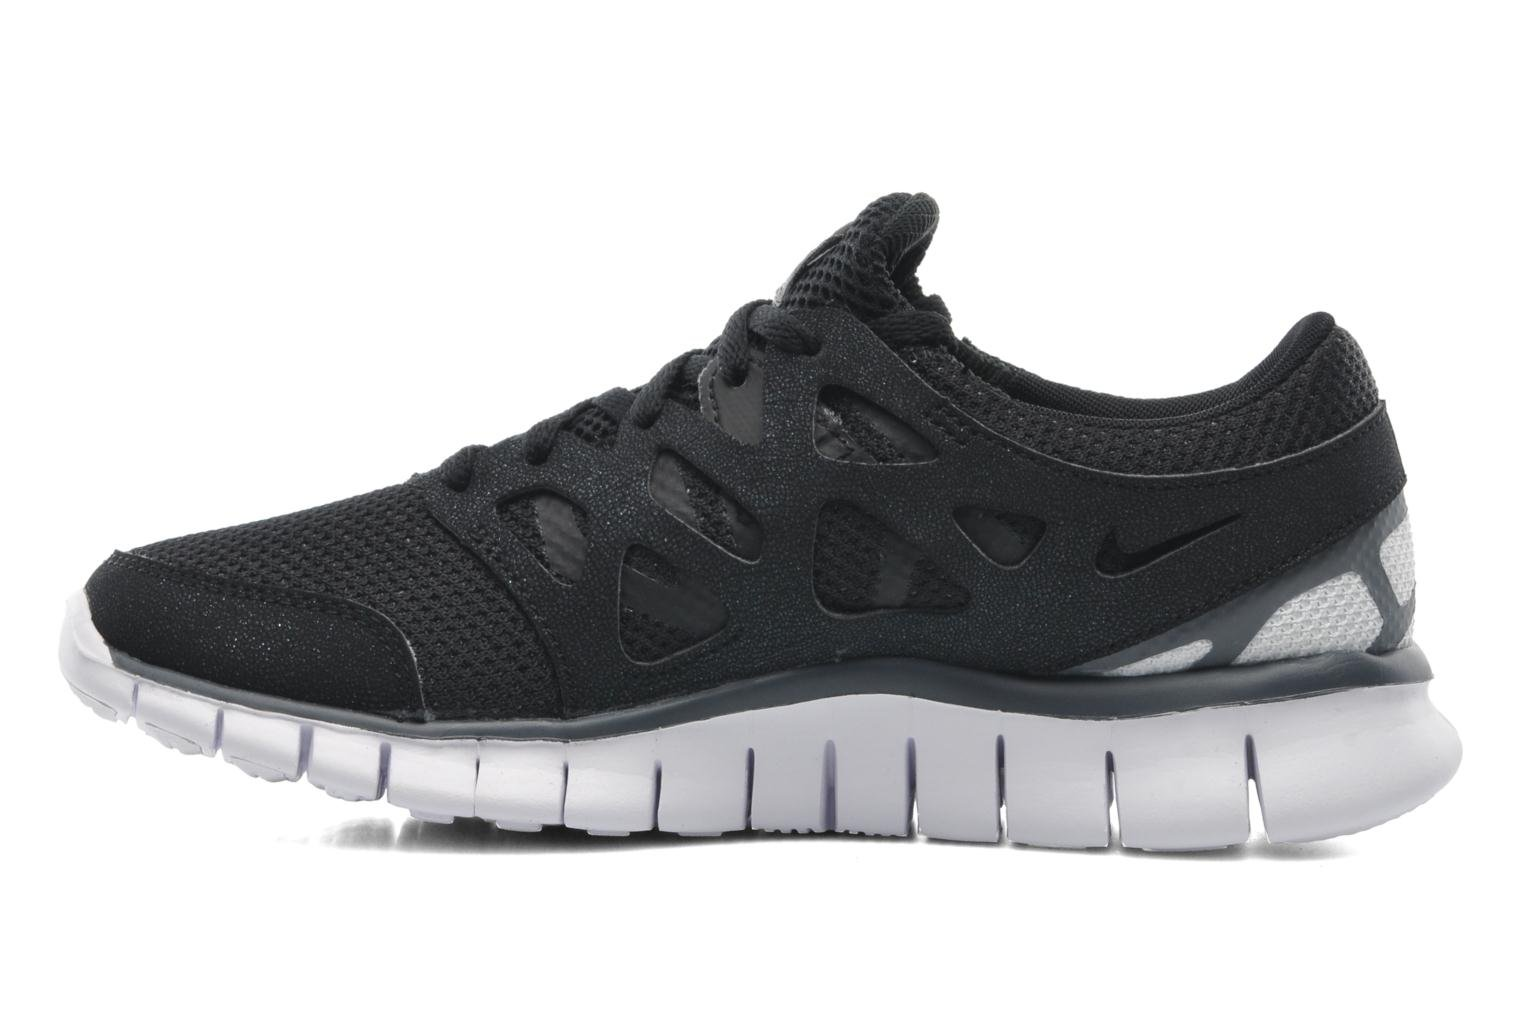 Wmns Nike Free Run+ 2 Ext Black/White-Dark Grey-White